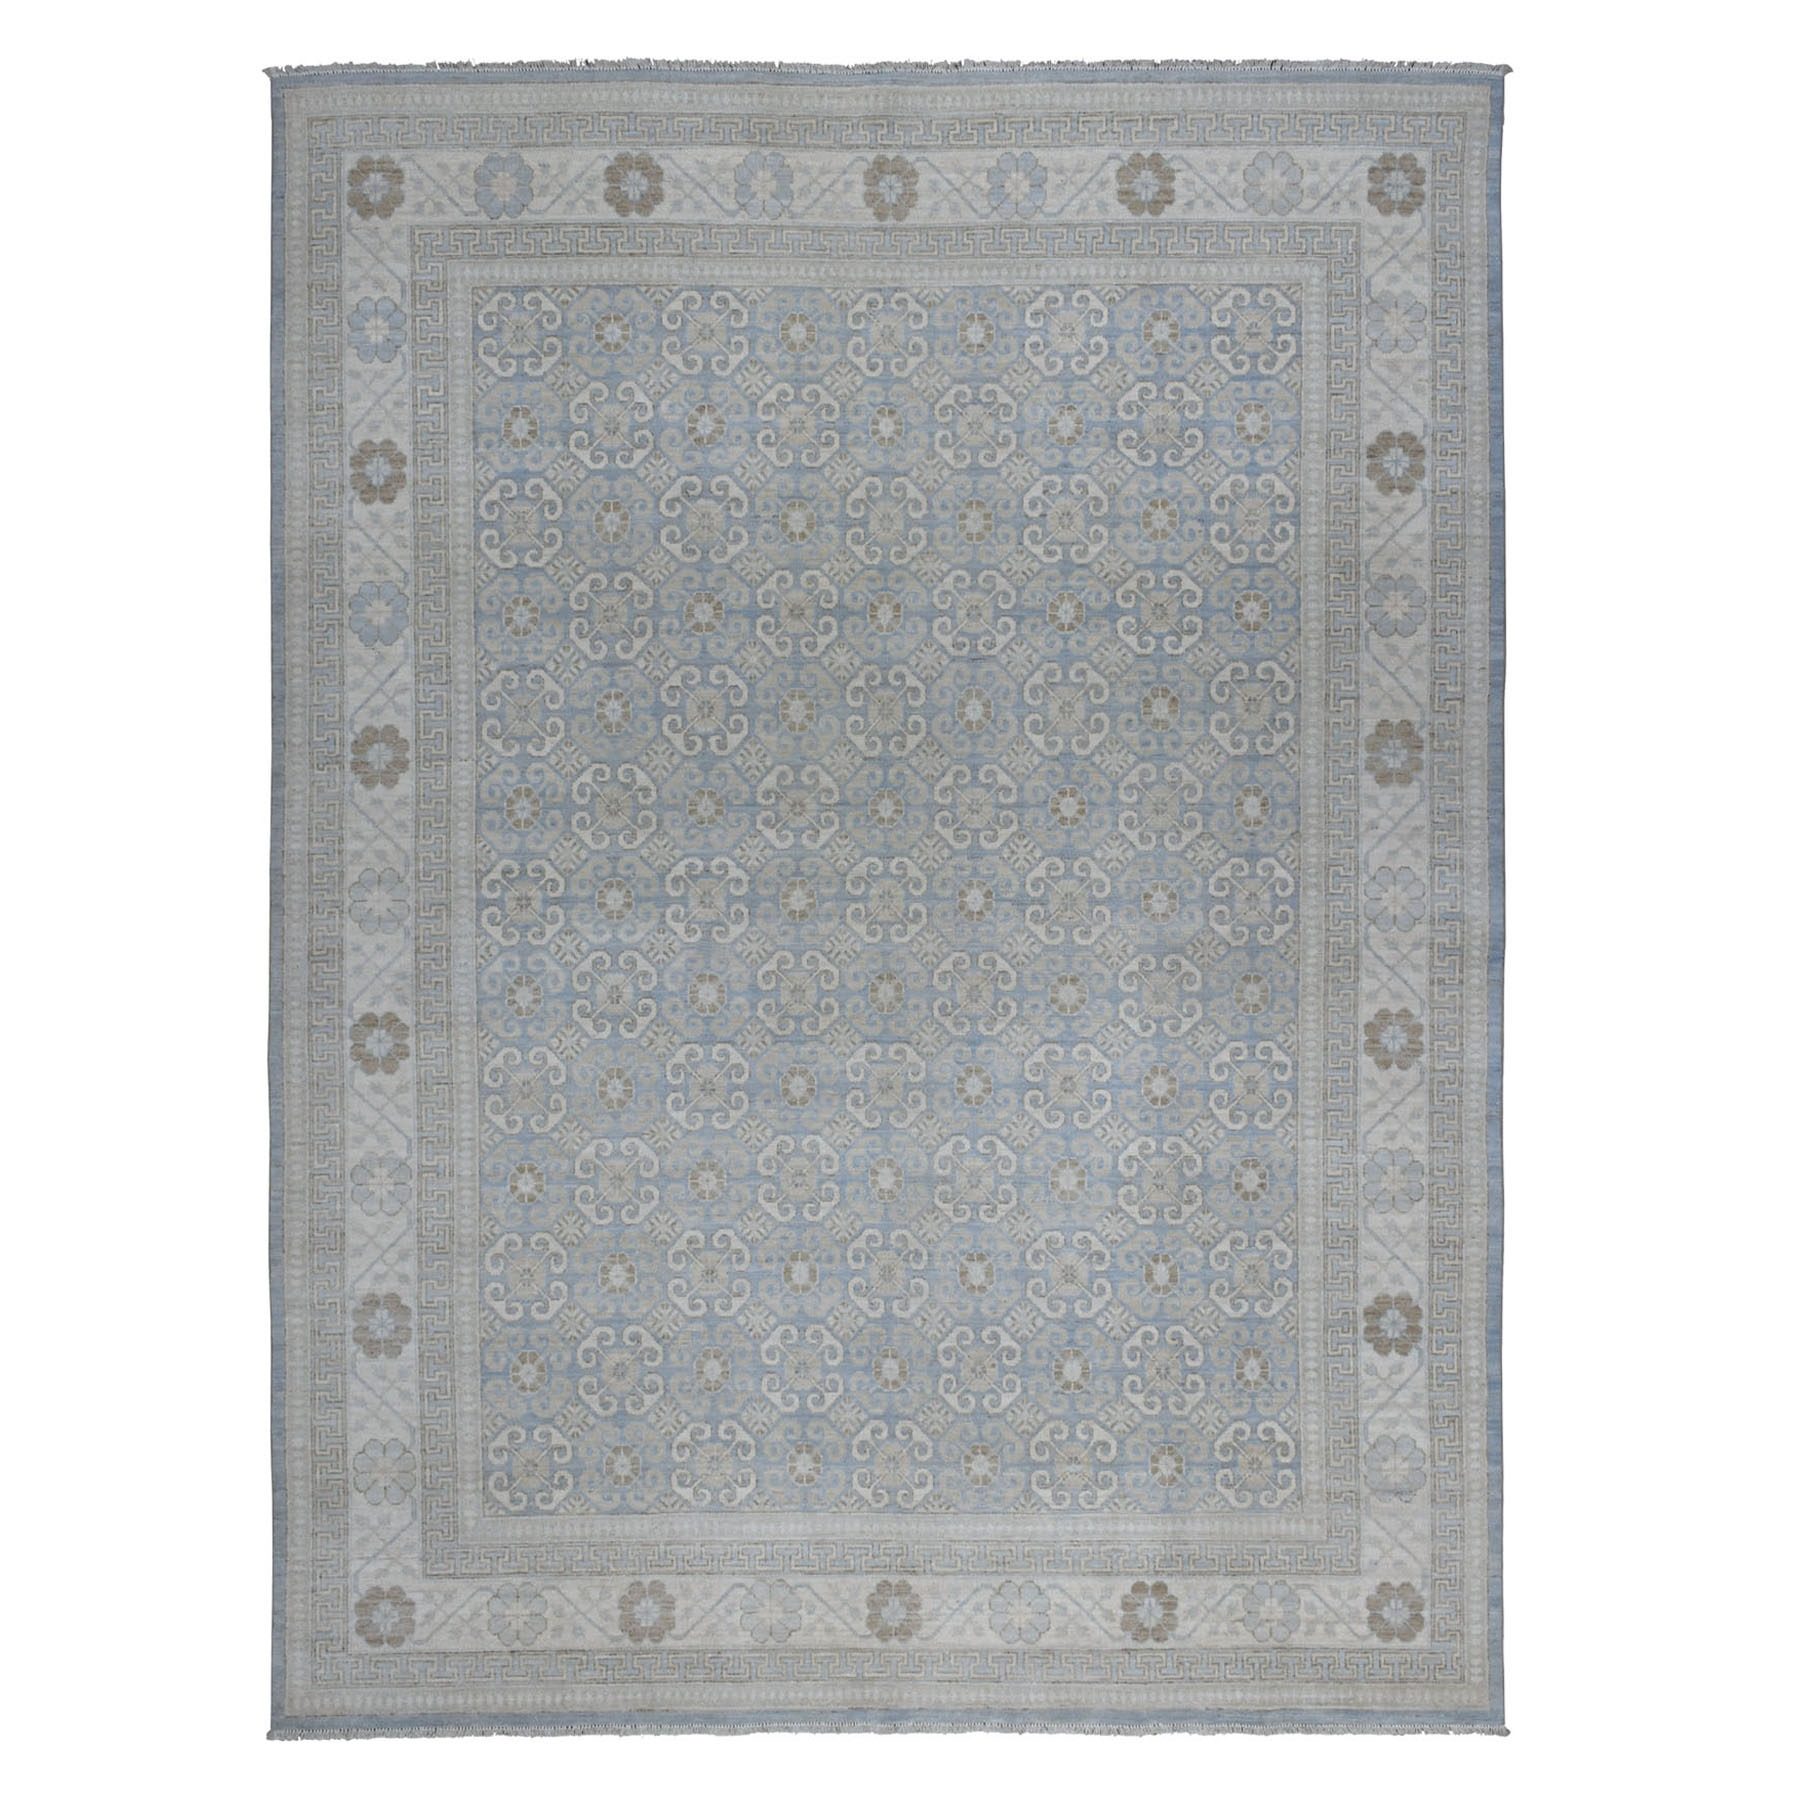 "8'10""x11'8"" Blue Stone Wash Peshawar with Khotan Design Pure Wool Hand Woven Oriental Rug"